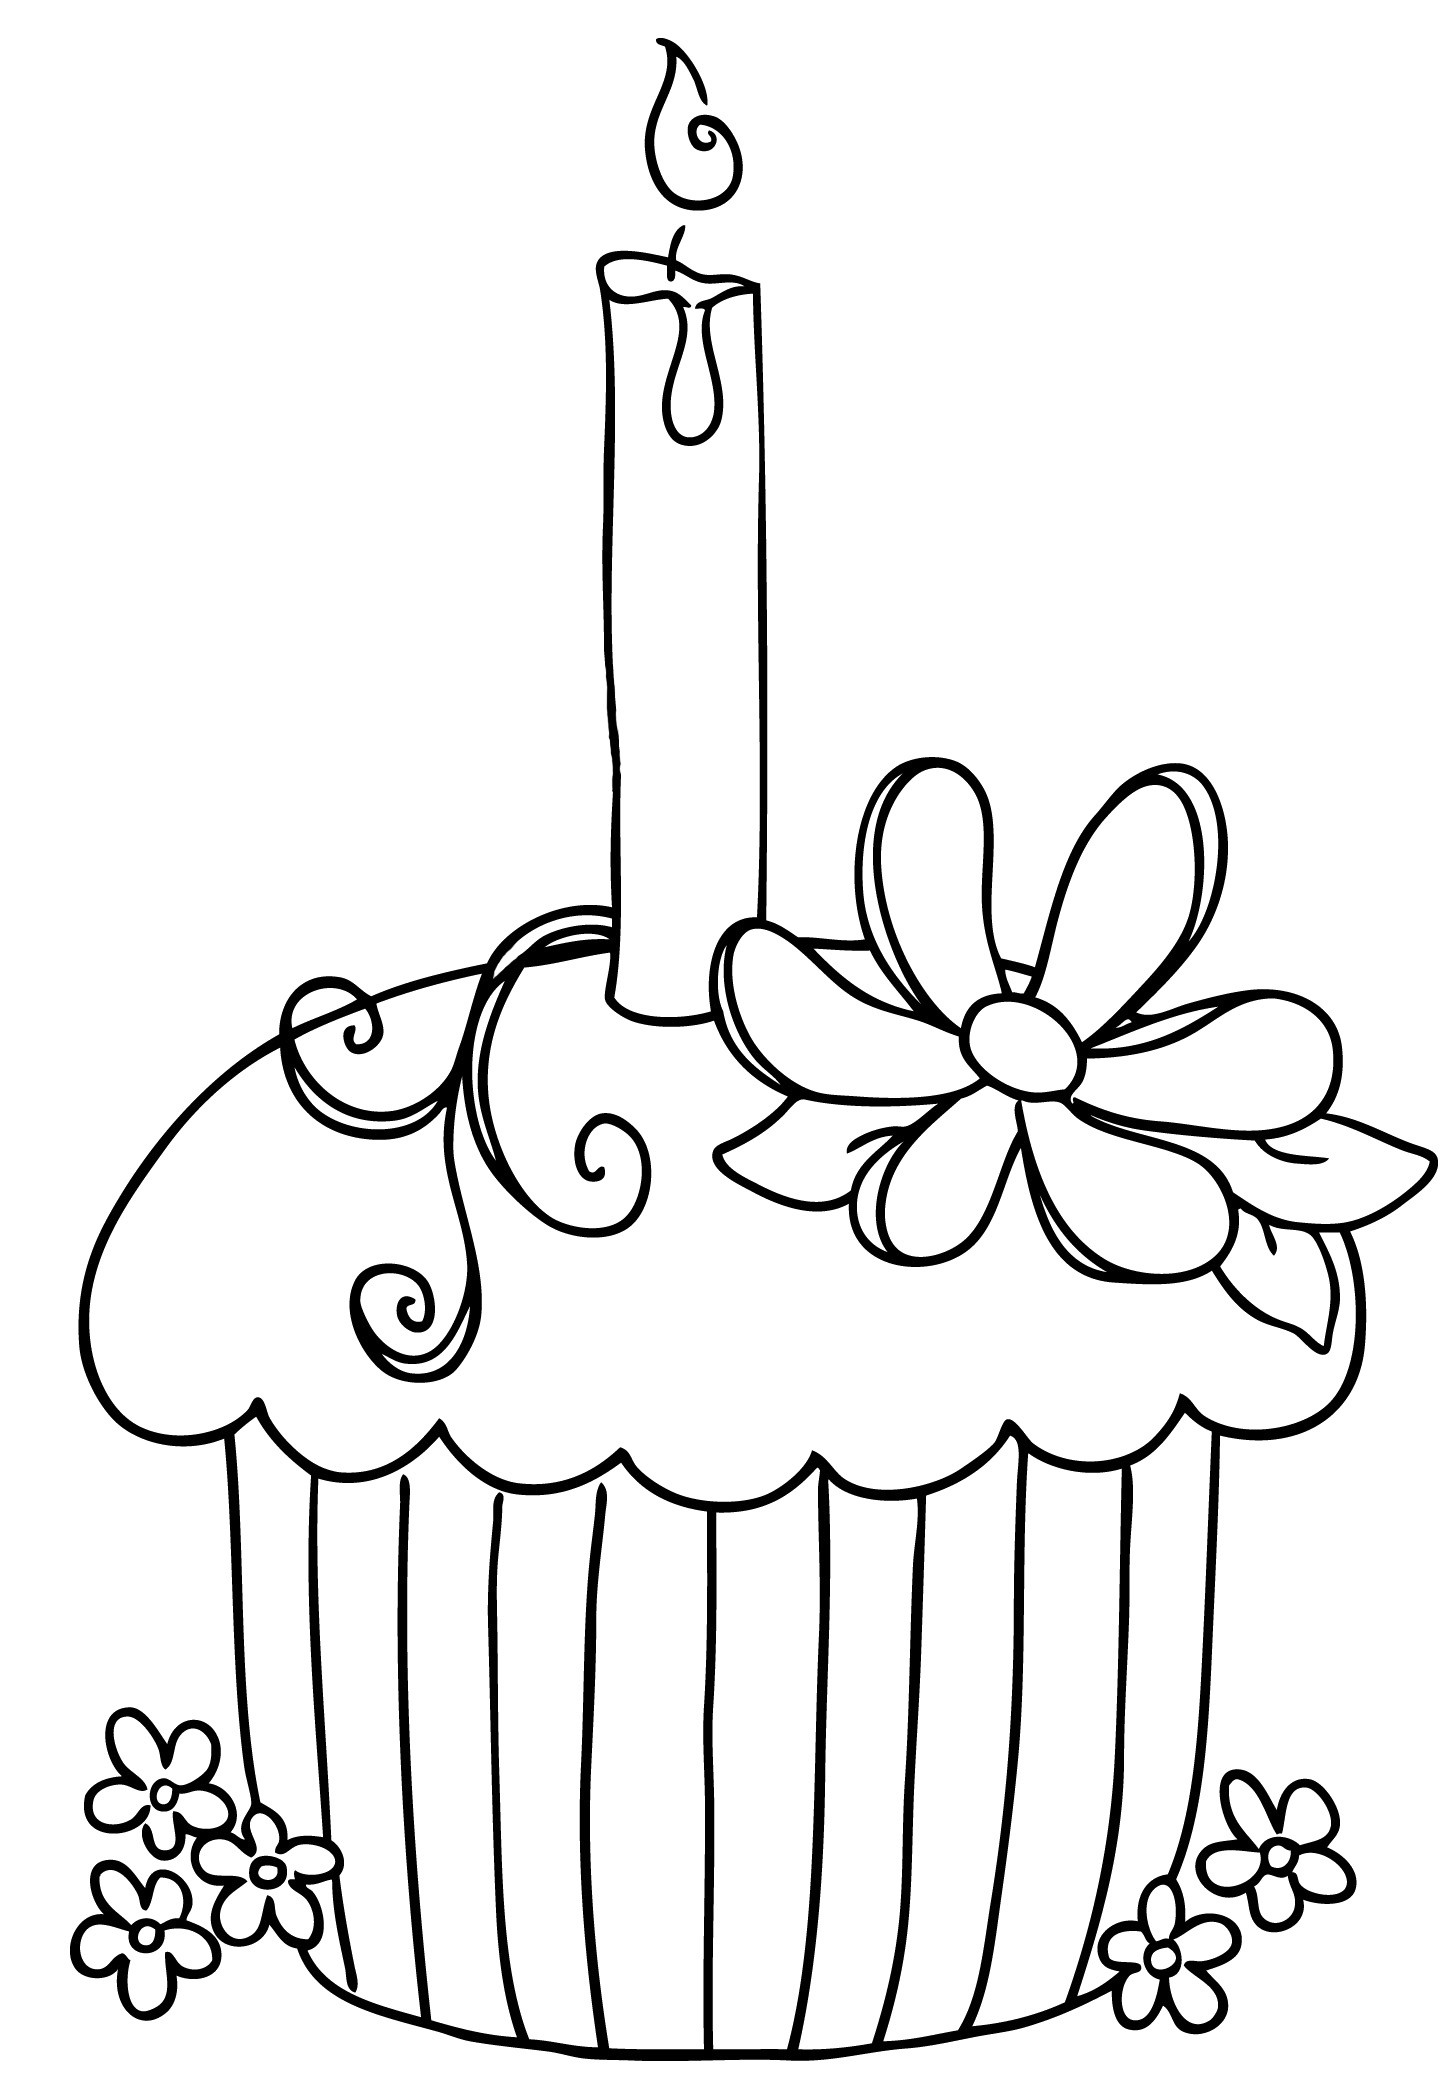 Cake Clipart Black And White No Candles 20 Free Cliparts